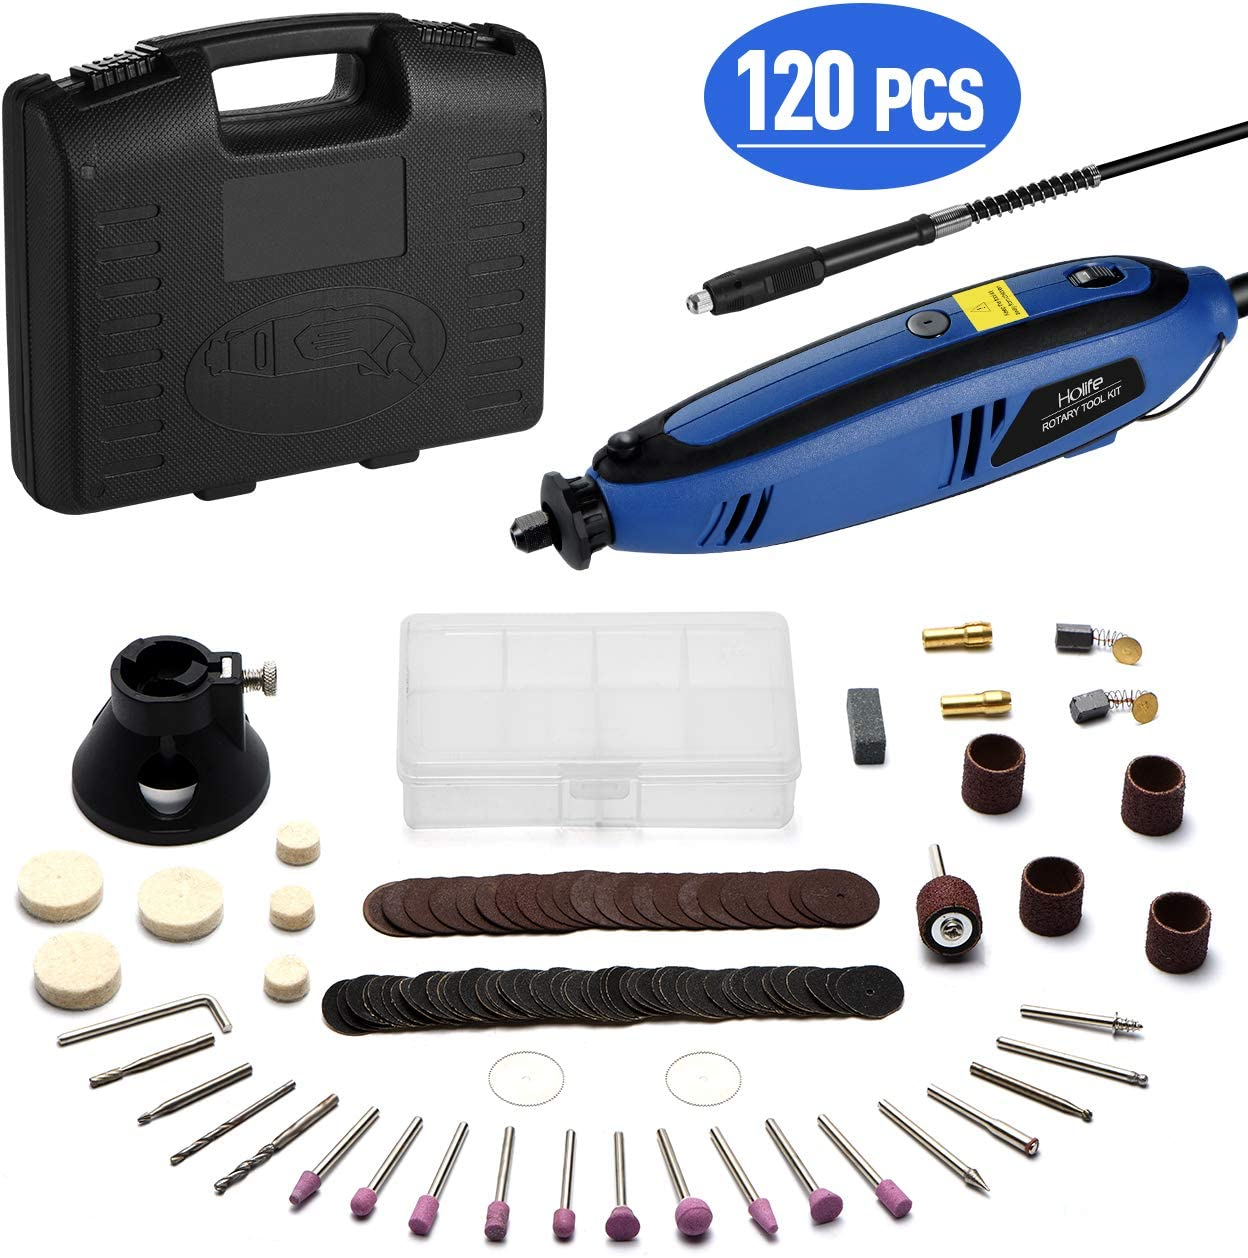 Holife Rotary Tool Kit, 120PCS Rotary Accessory Kit with Variable Speed, Flexible Shaft, Multi-function for Craft, Wood Carving, Sanding